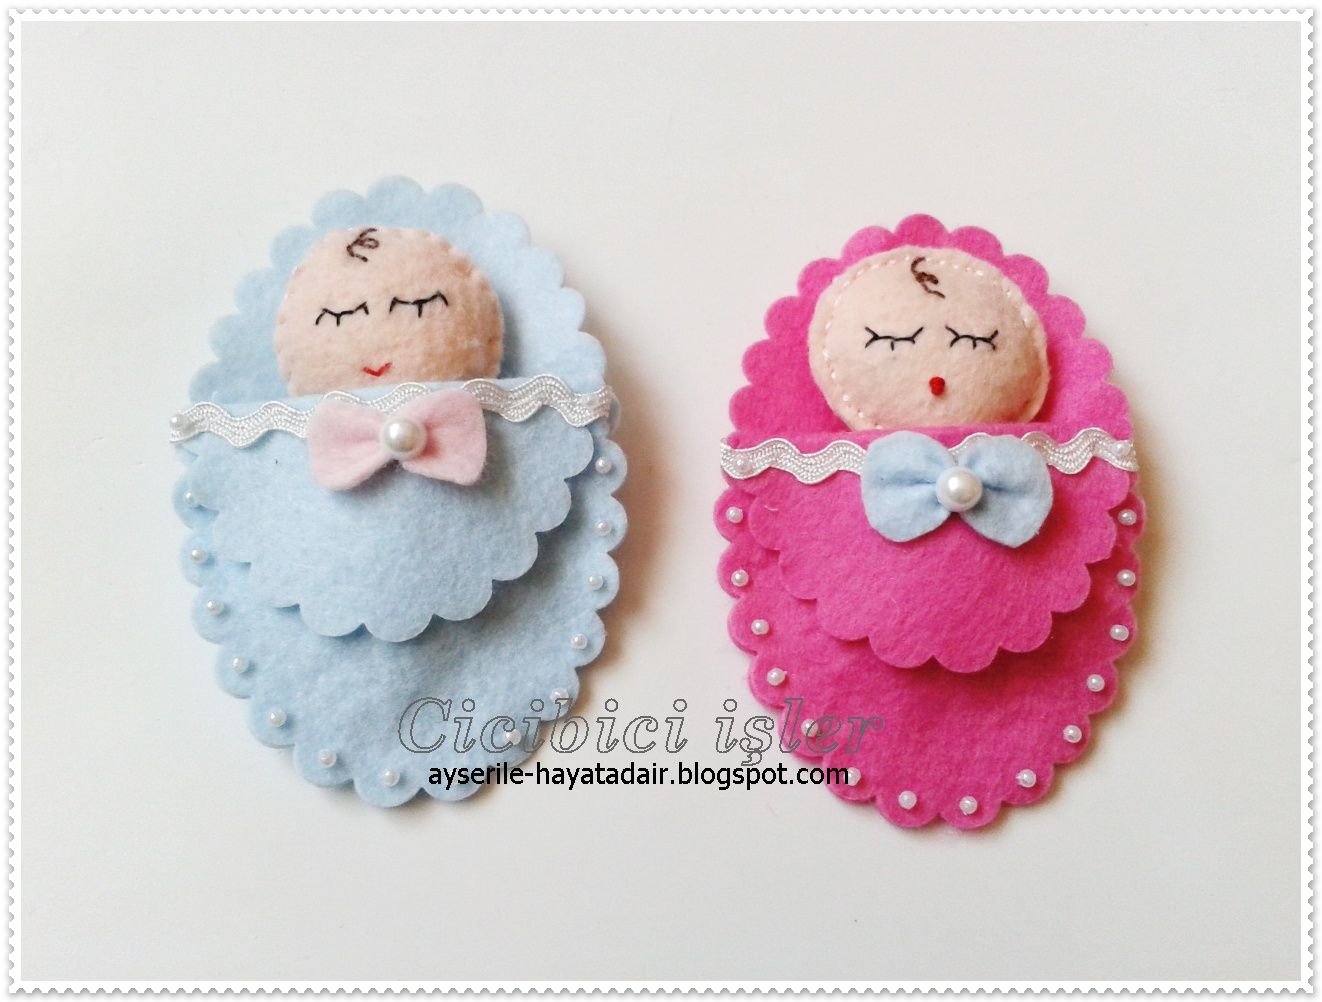 felt babies would look cute on a new born card, site has other cute things made with felt